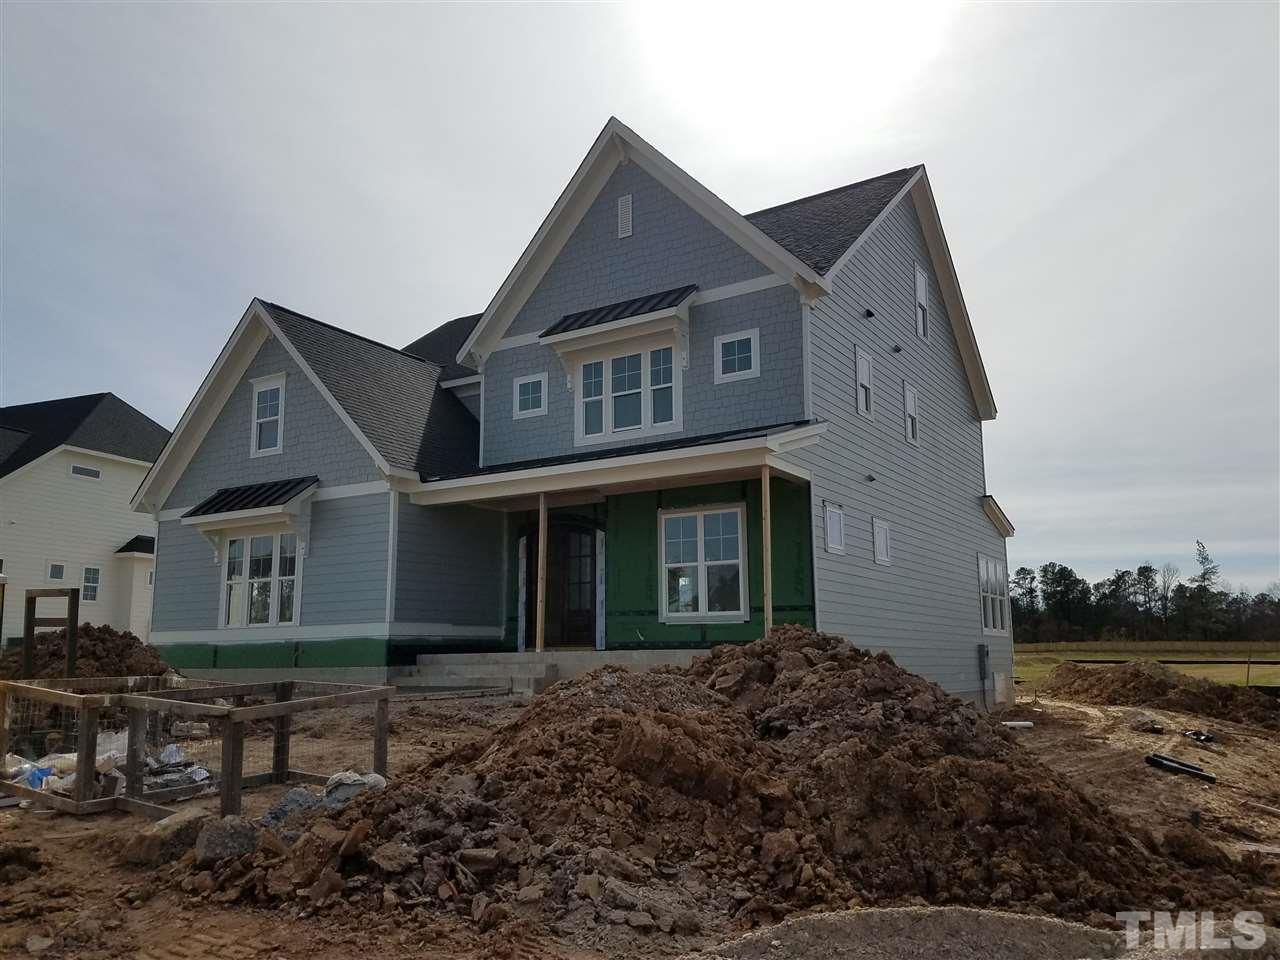 Custom built home by Future Homes by Jim Thompson. Double entry doors open to large foyer which leads to open family/Kit/breakfast area.  Custom trim work through out home. Coffered ceilings in family. Tray ceiling in owners suite with spa bath with free standing tub and shower with 3 different spray options. Owners closet opens into laundry. 2 bonus rooms, one on 2nd floor one on the 3rd. 5th bedroom and full bath on 3rd floor.  Custom cubbies in mud room.  Cabinets to ceiling in kitchen.